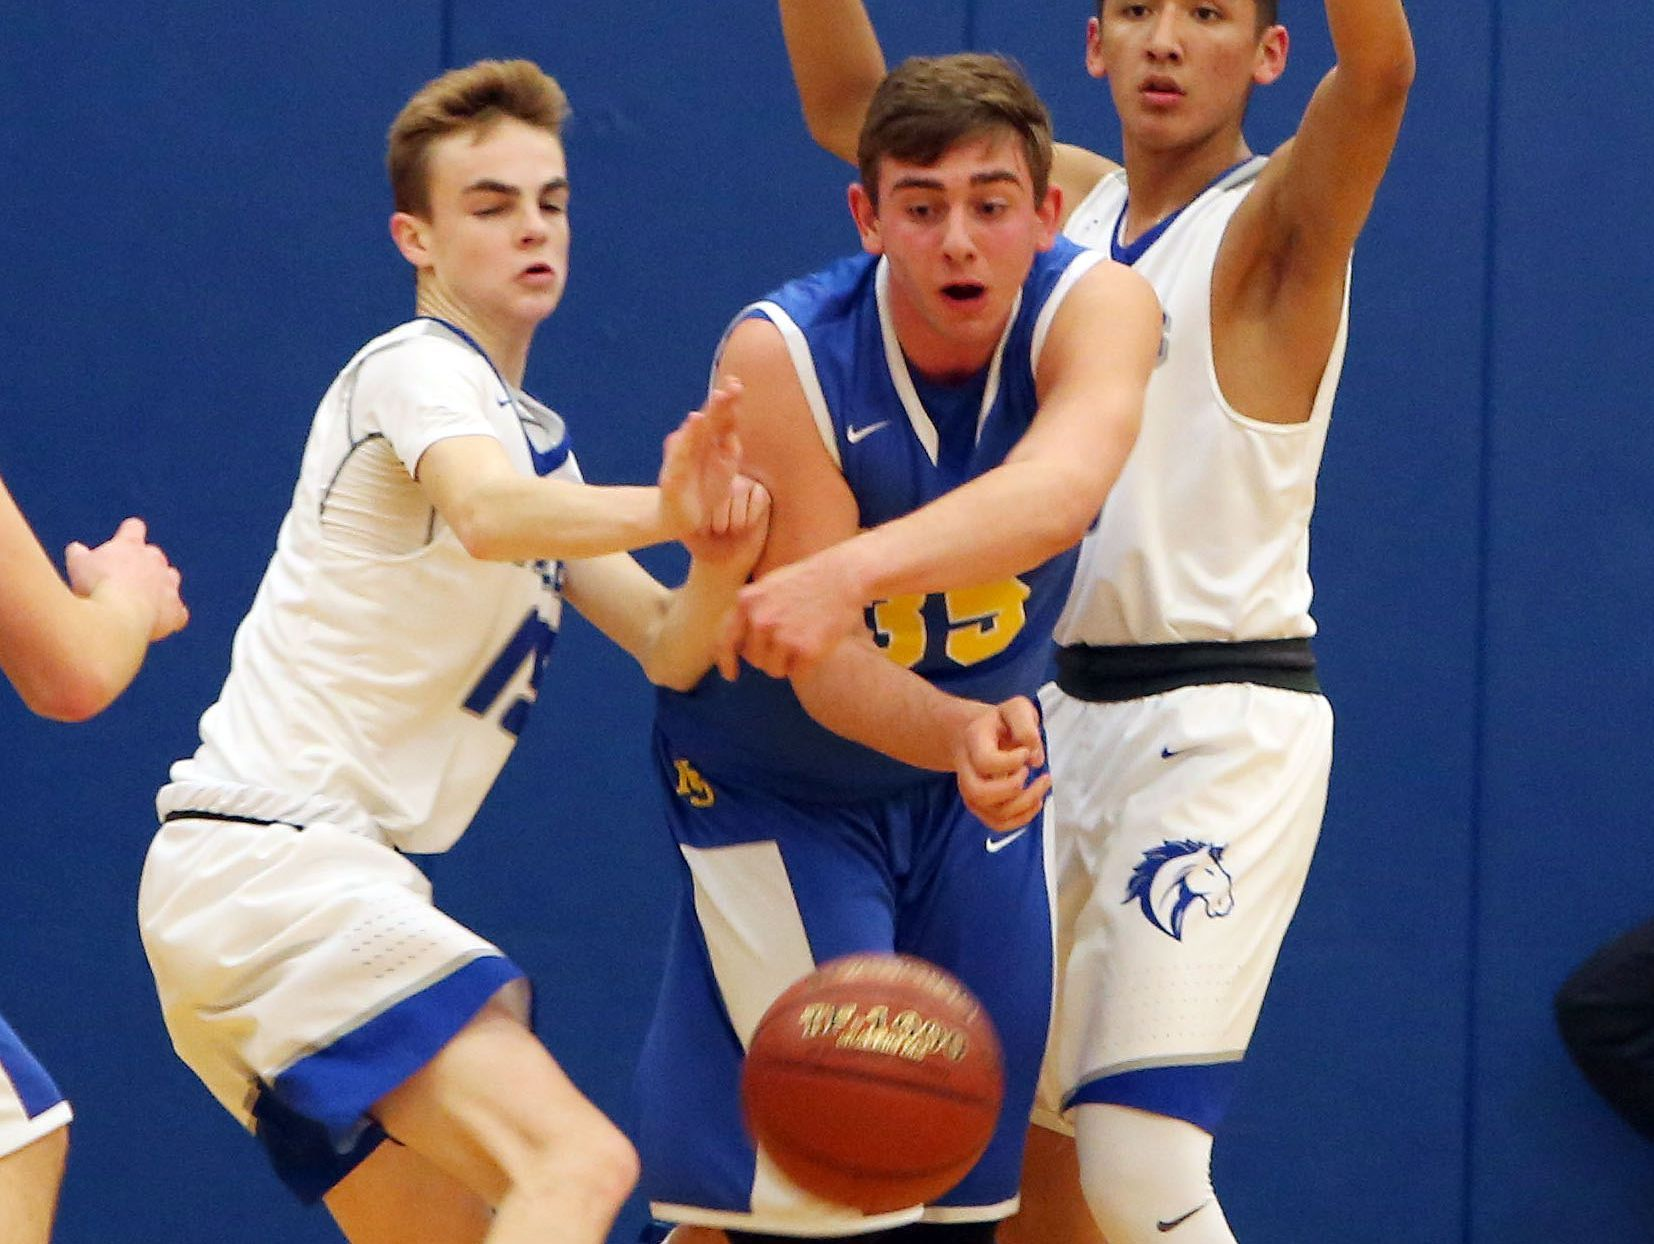 From left, Millbrook's Shane Sinon (15) and Humberto Cabrera (3) put pressure on North Salem's Chris Alterio (23) during basketball action during the state regional semifinal at SUNY New Paltz March 7, 2017.